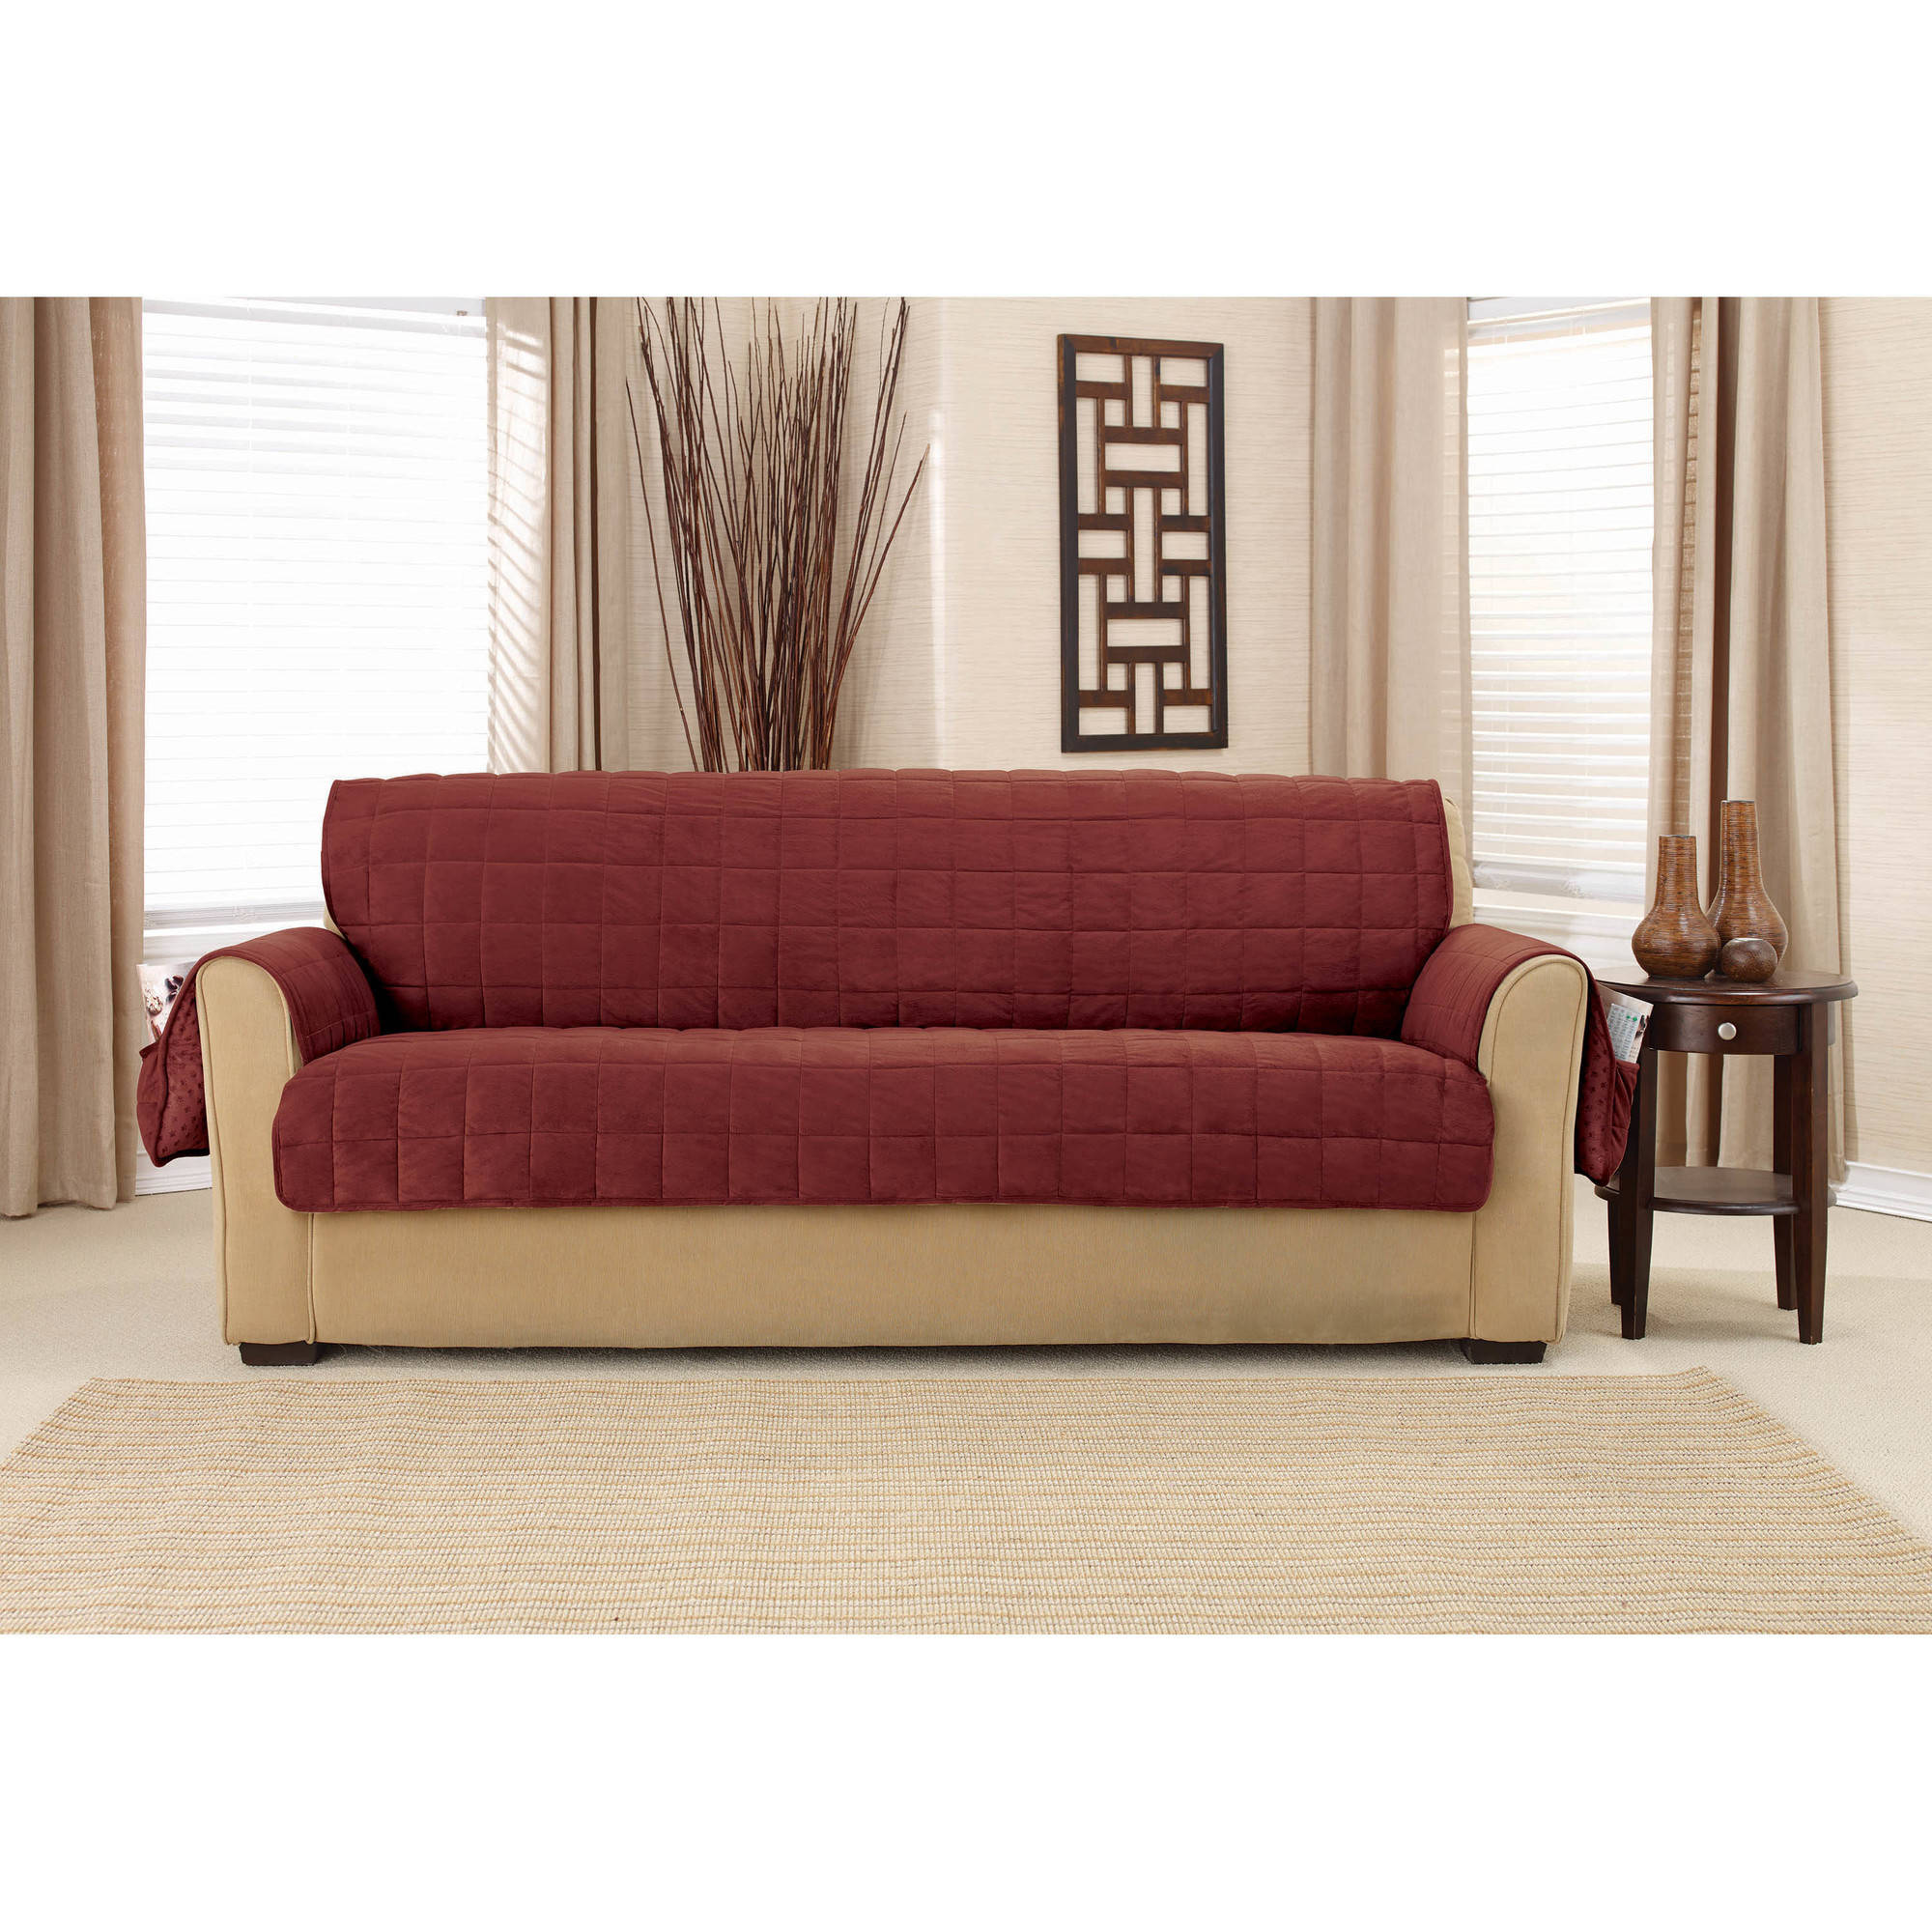 american evita category page bed product name cover brg index chain flowers id style sofa couch sf by as mobista burgundy